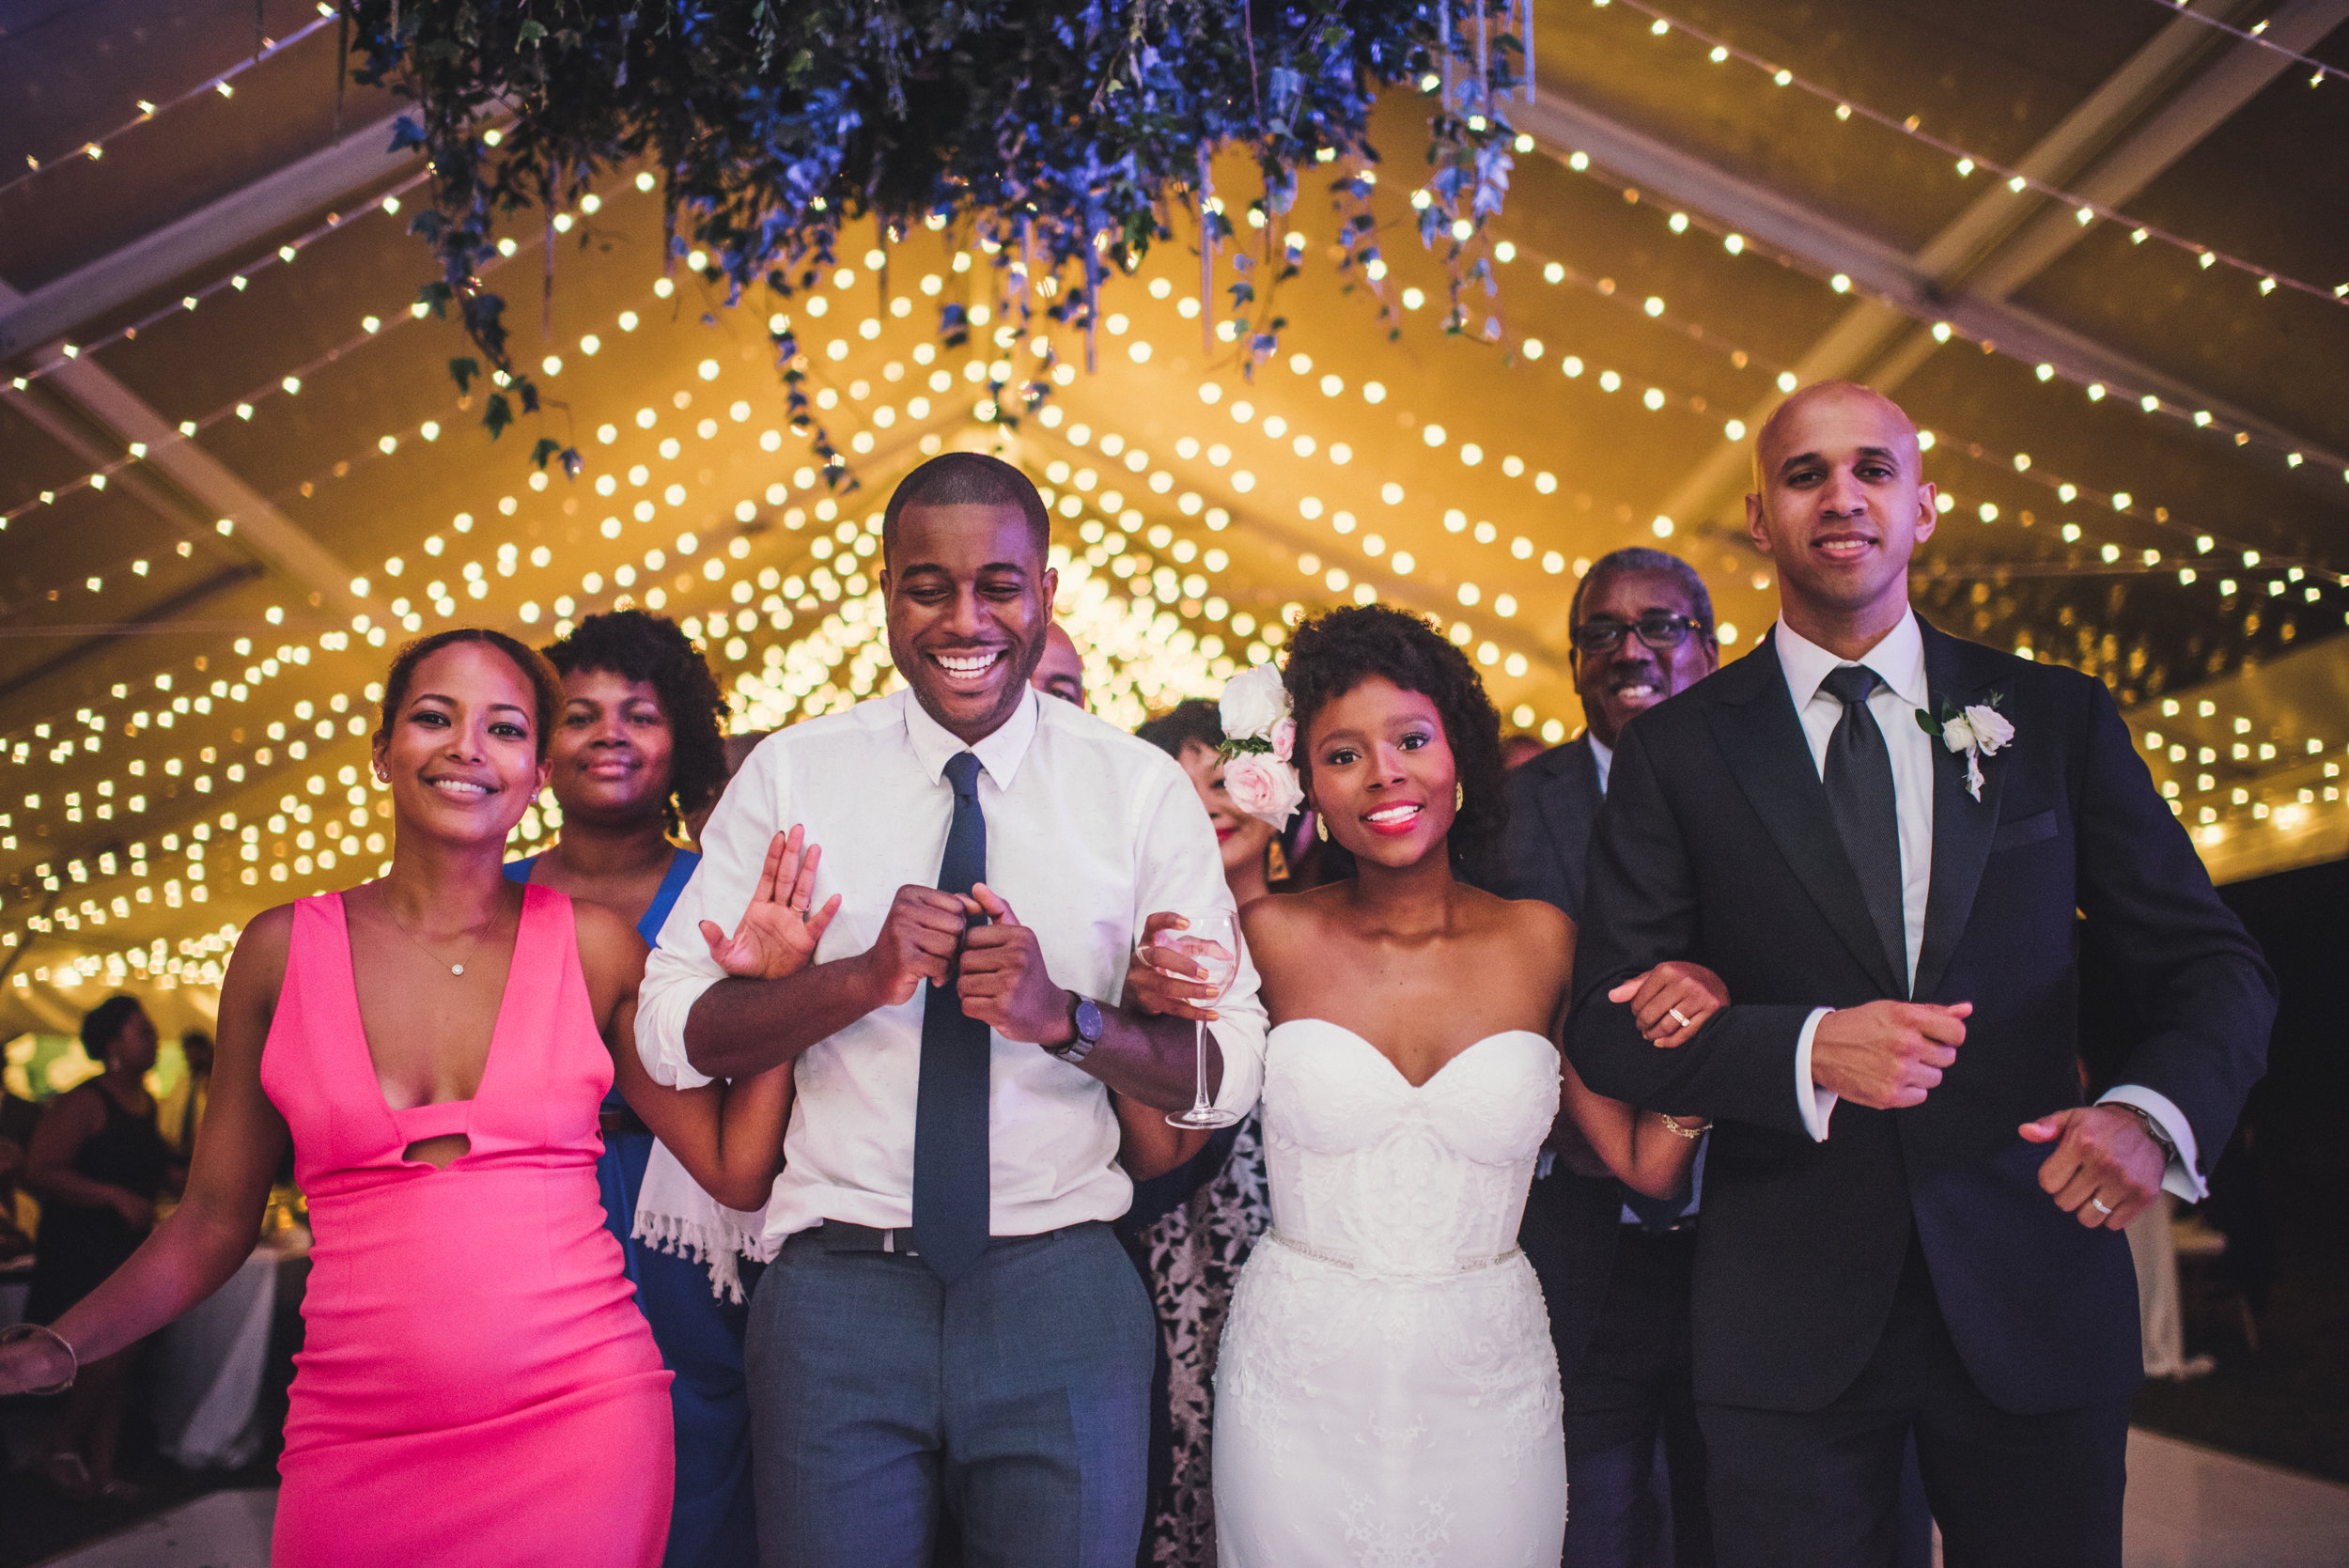 GLENVIEW MANSION WEDDING - INTIMATE WEDDING PHOTOGRAPHER - TWOTWENTY by CHI-CHI AGBIM-357.jpg